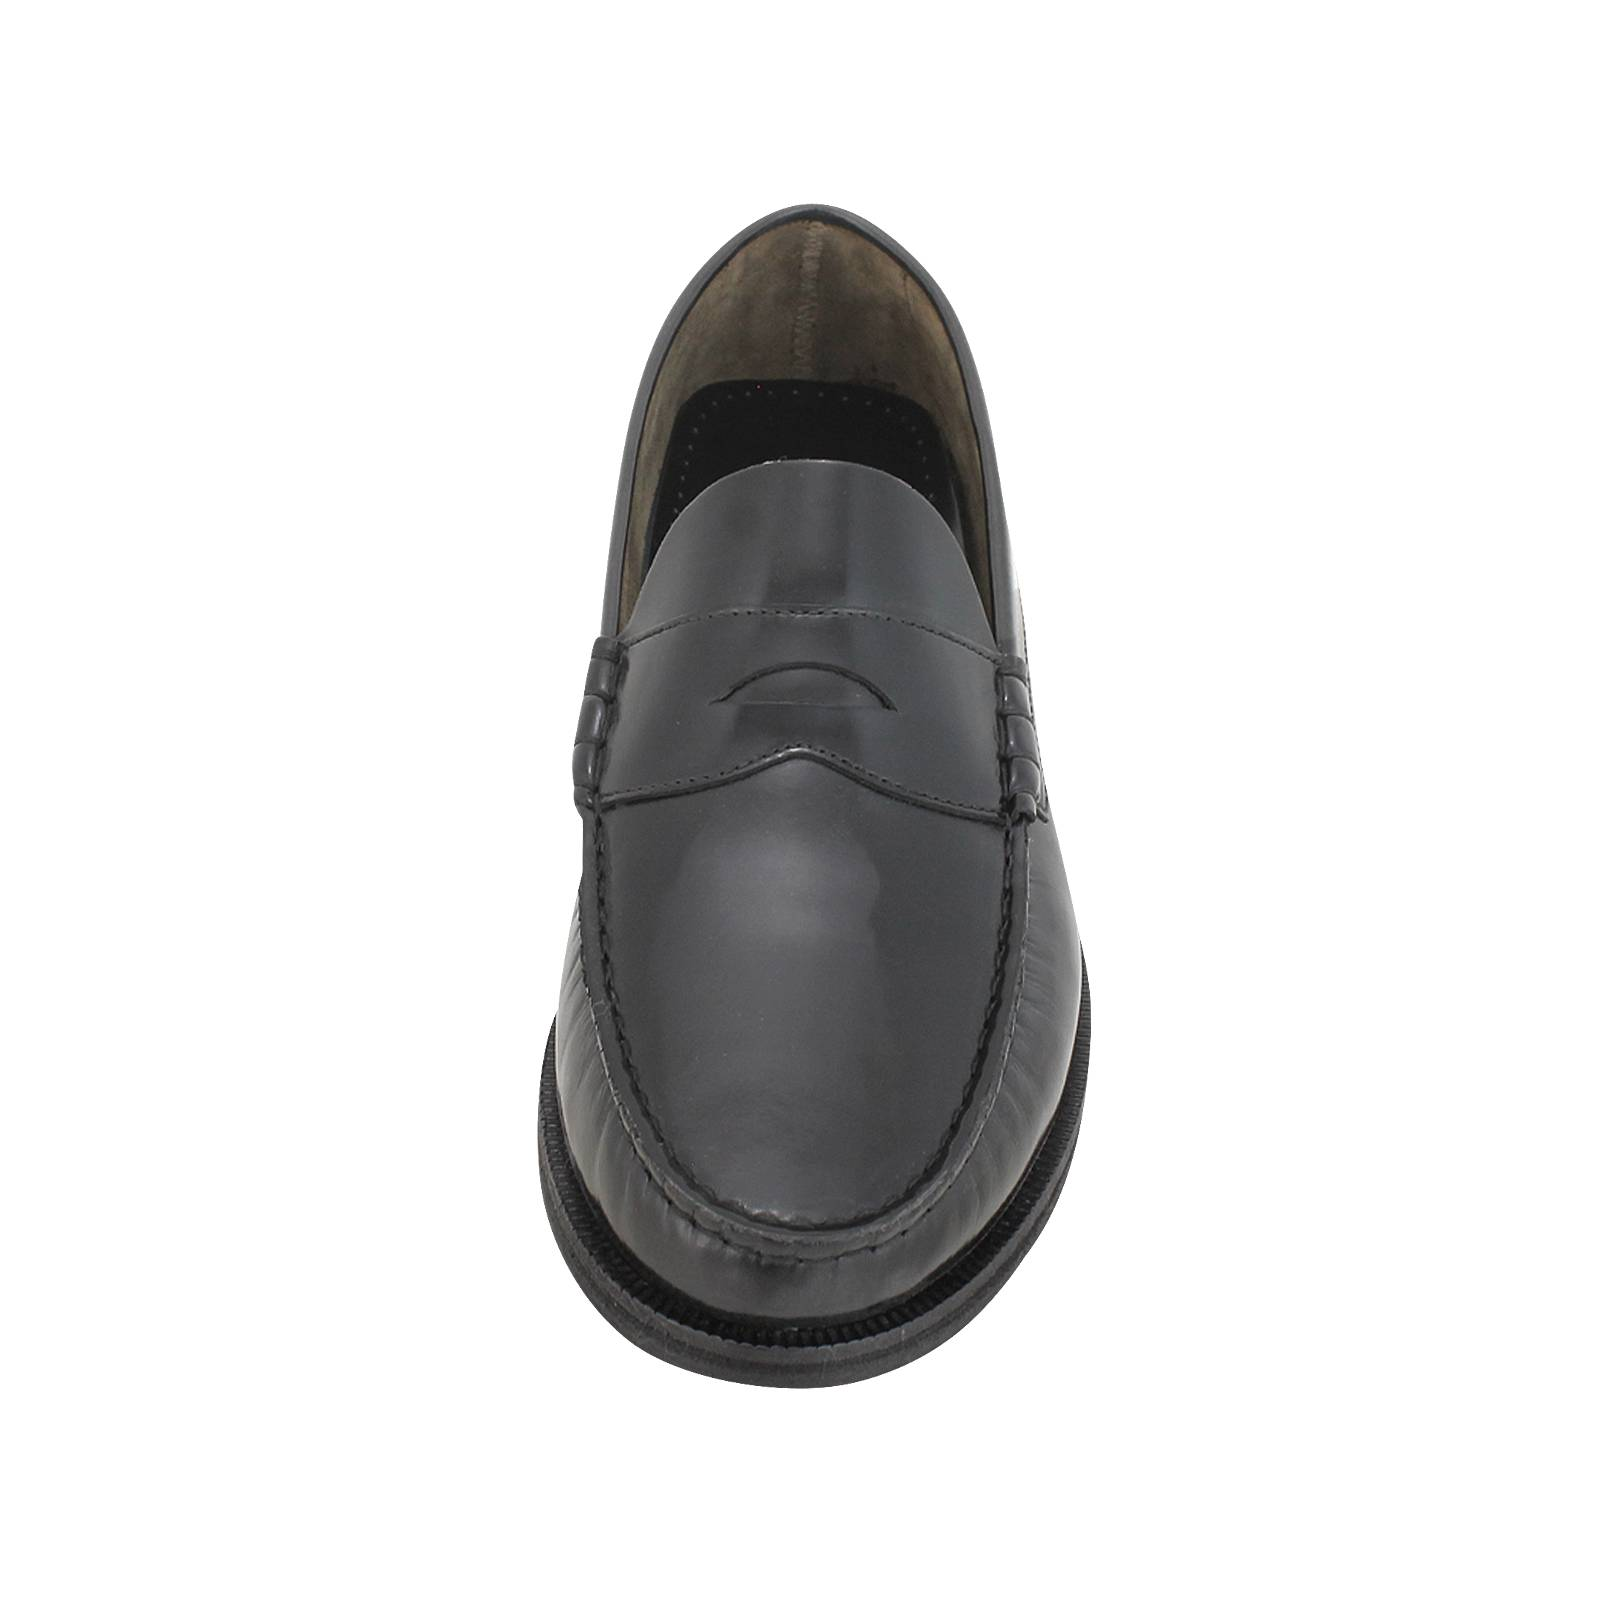 5307b5e3d94 Niagara Premium Loafer - Lumberjack Men s loafers made of semi ...